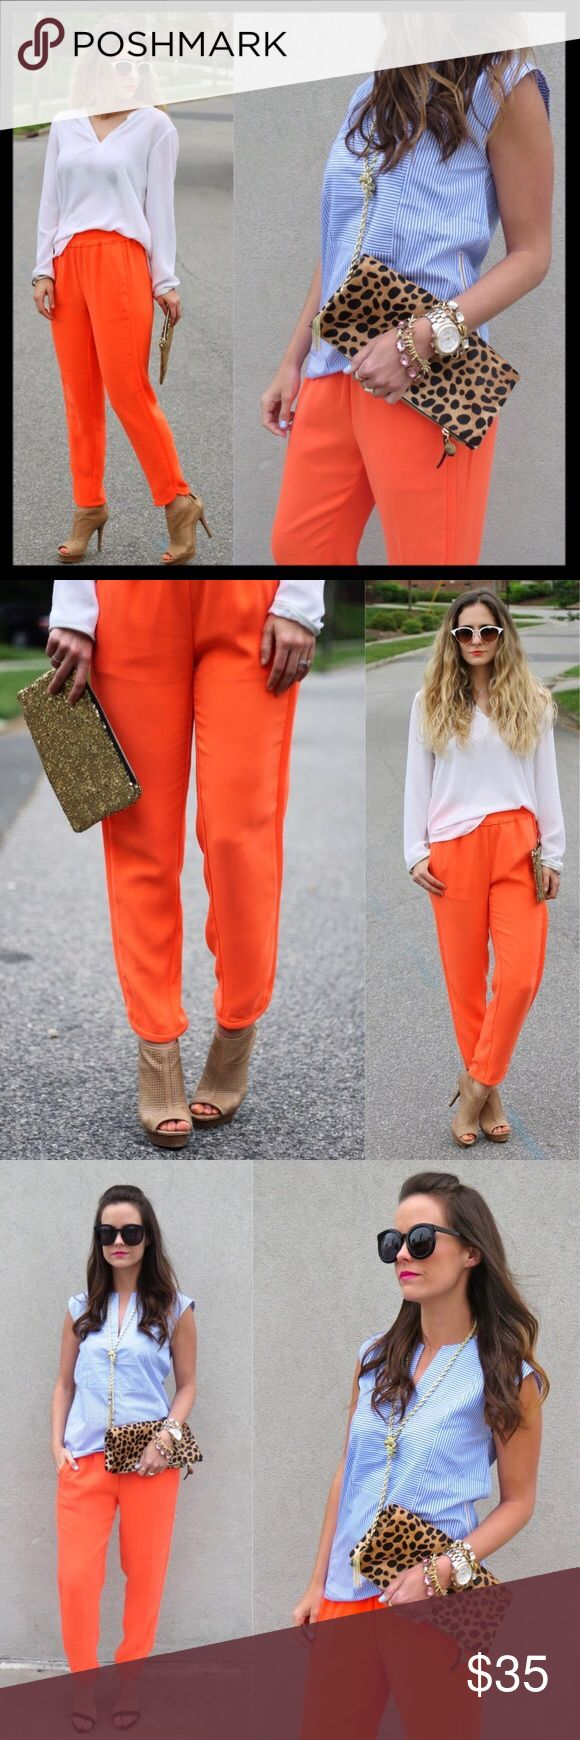 "j. crew // orange reese joggers pants neon ankle Pull-on pants for cocktails? We say yes. This relaxed pair is made from a matte crepe fabric for an easy, elegant drape and dressed up with shirttail hems, so now the difference between hanging out and going out is really just a question of footwear. Polyester. Elastic waist. Slant pockets. Machine wash. Sits lower on hip. Relaxed through hip and thigh, with a tapered leg. 26"" inseam. Waistband is 14"" across lying flat unstretched. Great…"